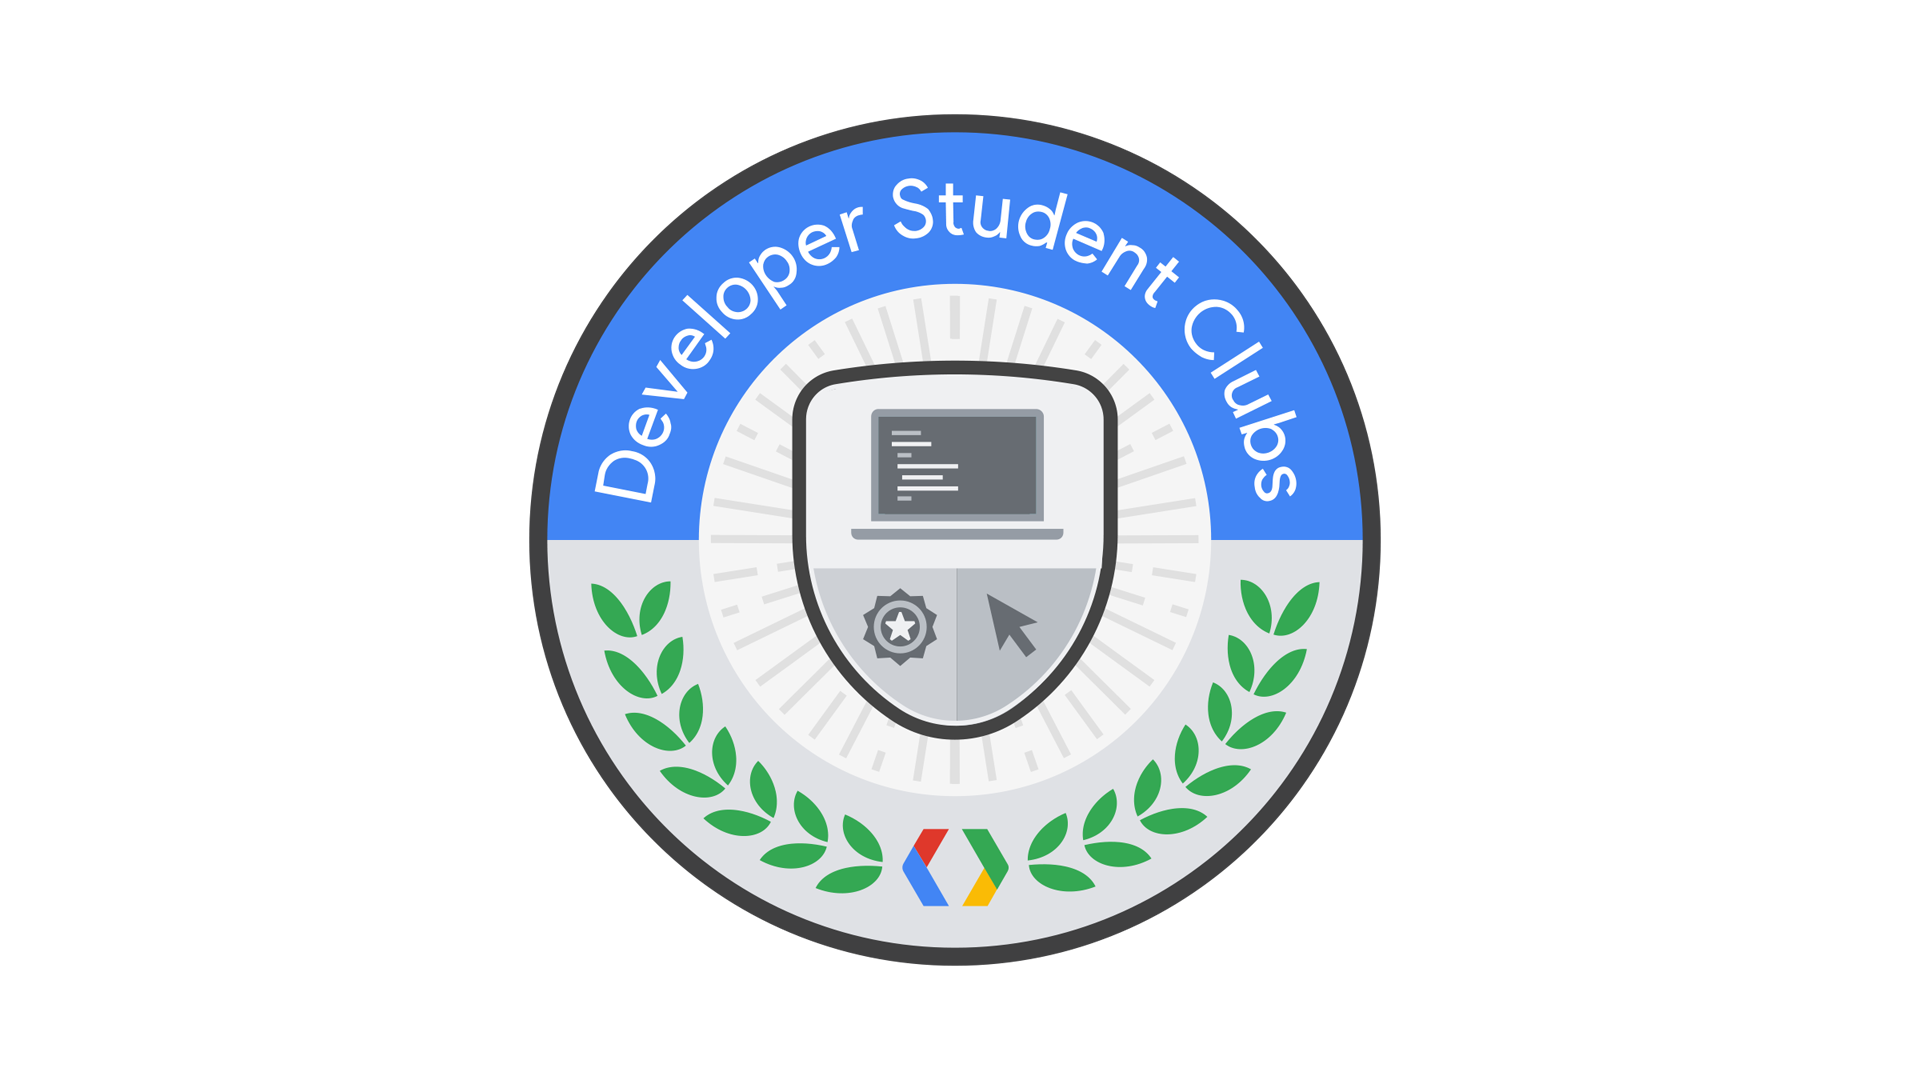 [DSC EVENT] Google Cloud Study Jam 2019 - Having Fun with Google Cloud